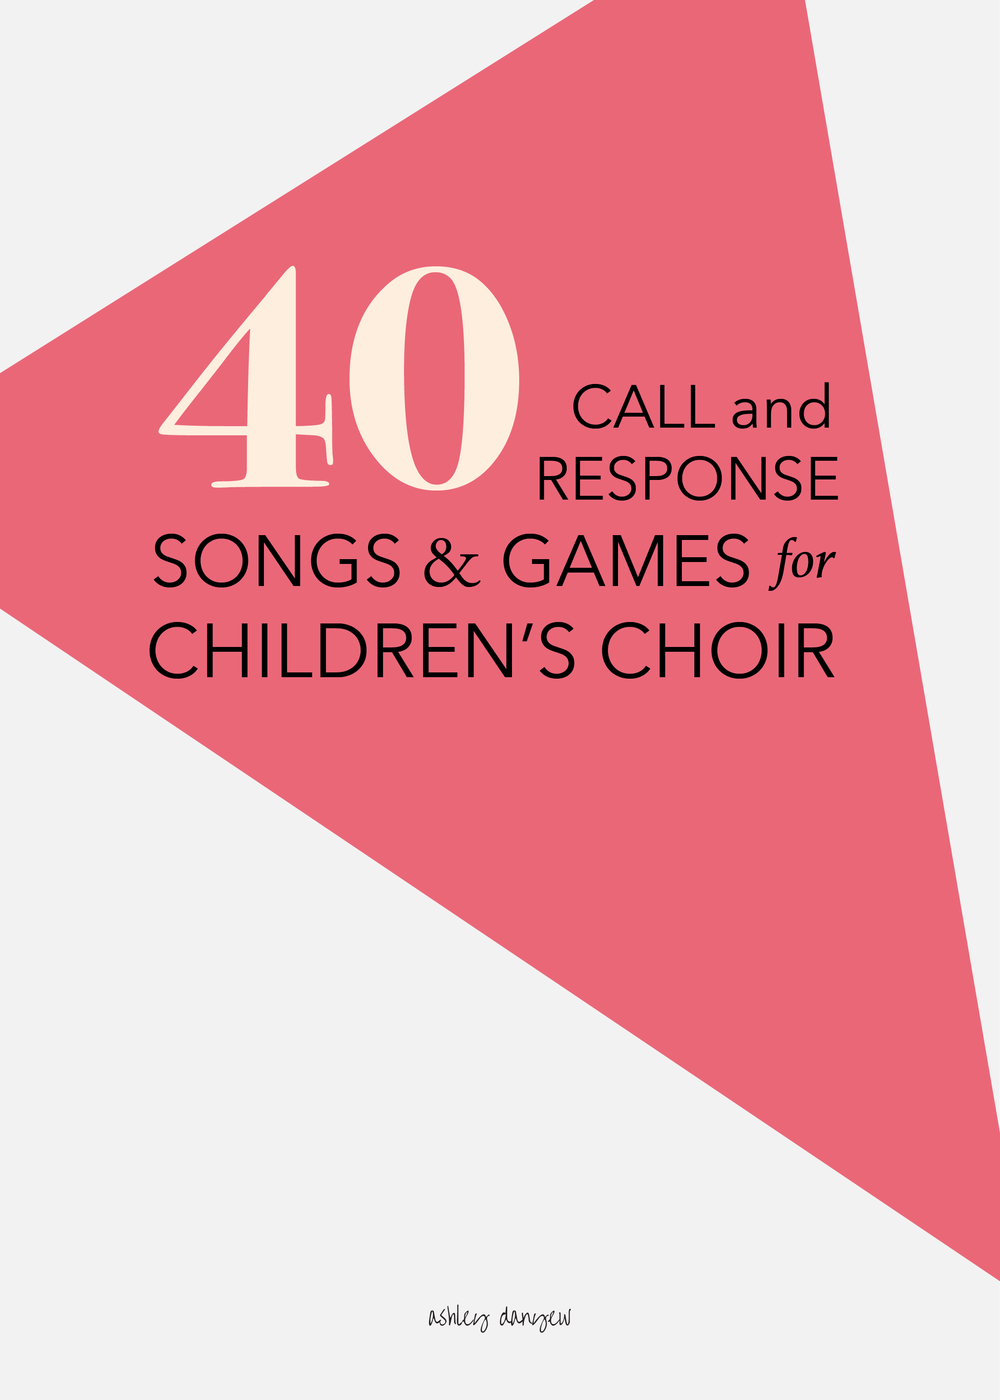 40 Call & Response Songs and Games for Children's Choir